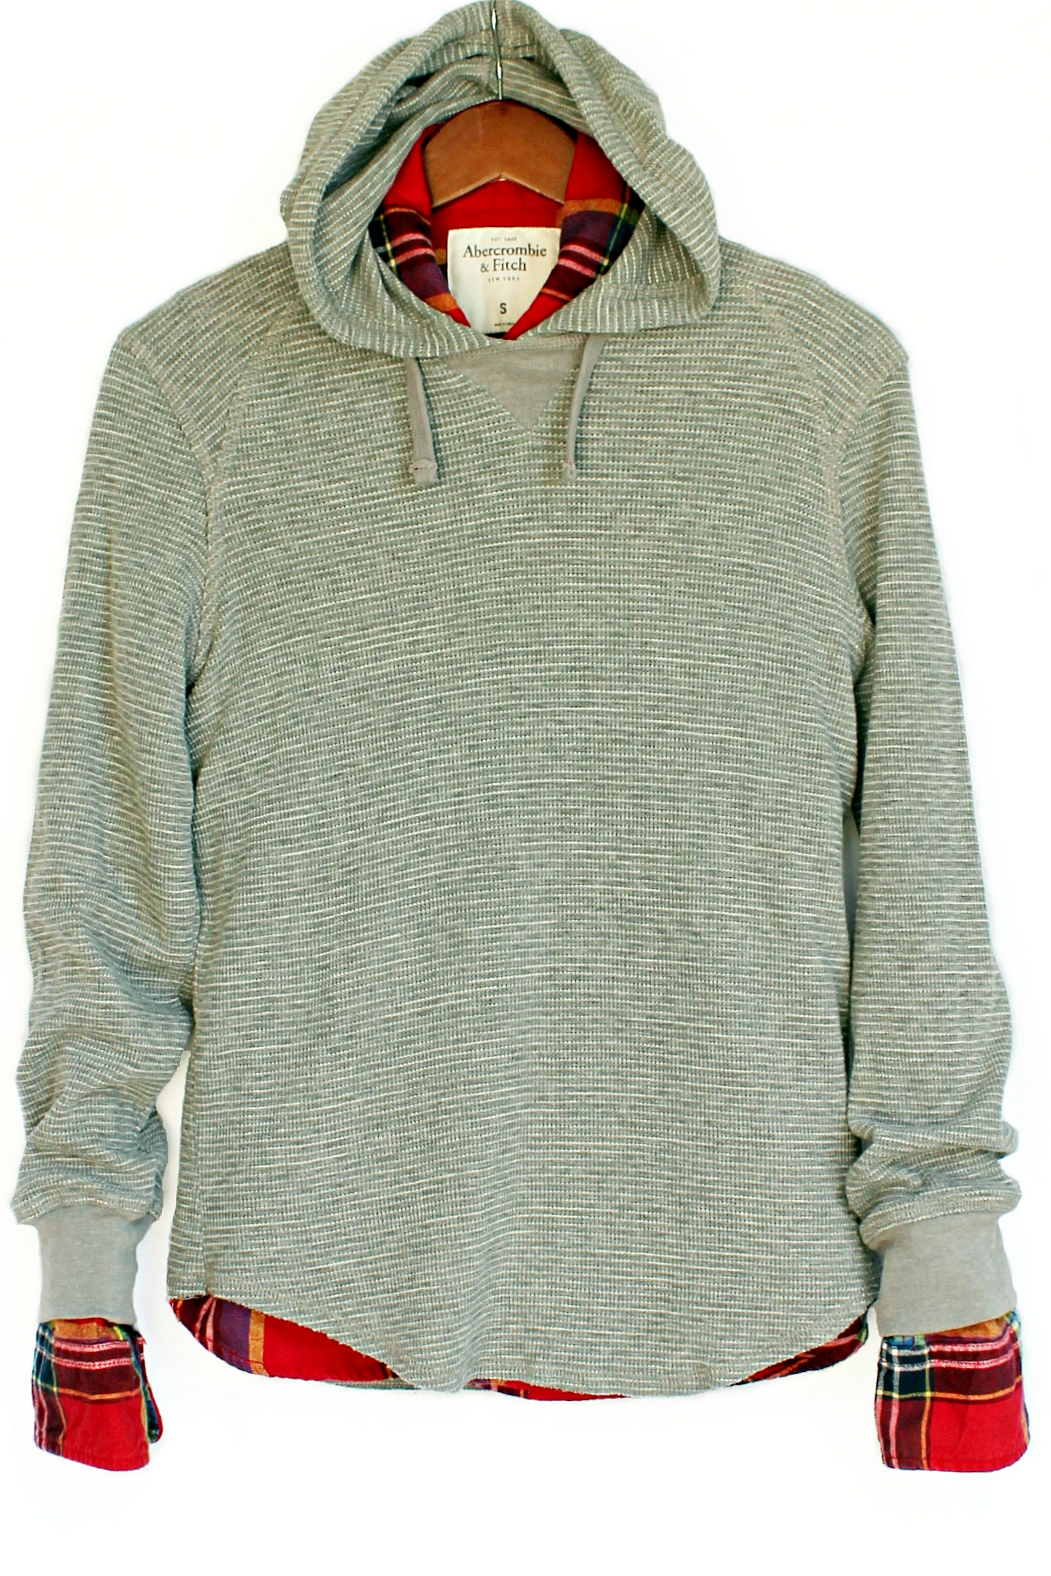 Charles Thermal Hoodie | Just Vu